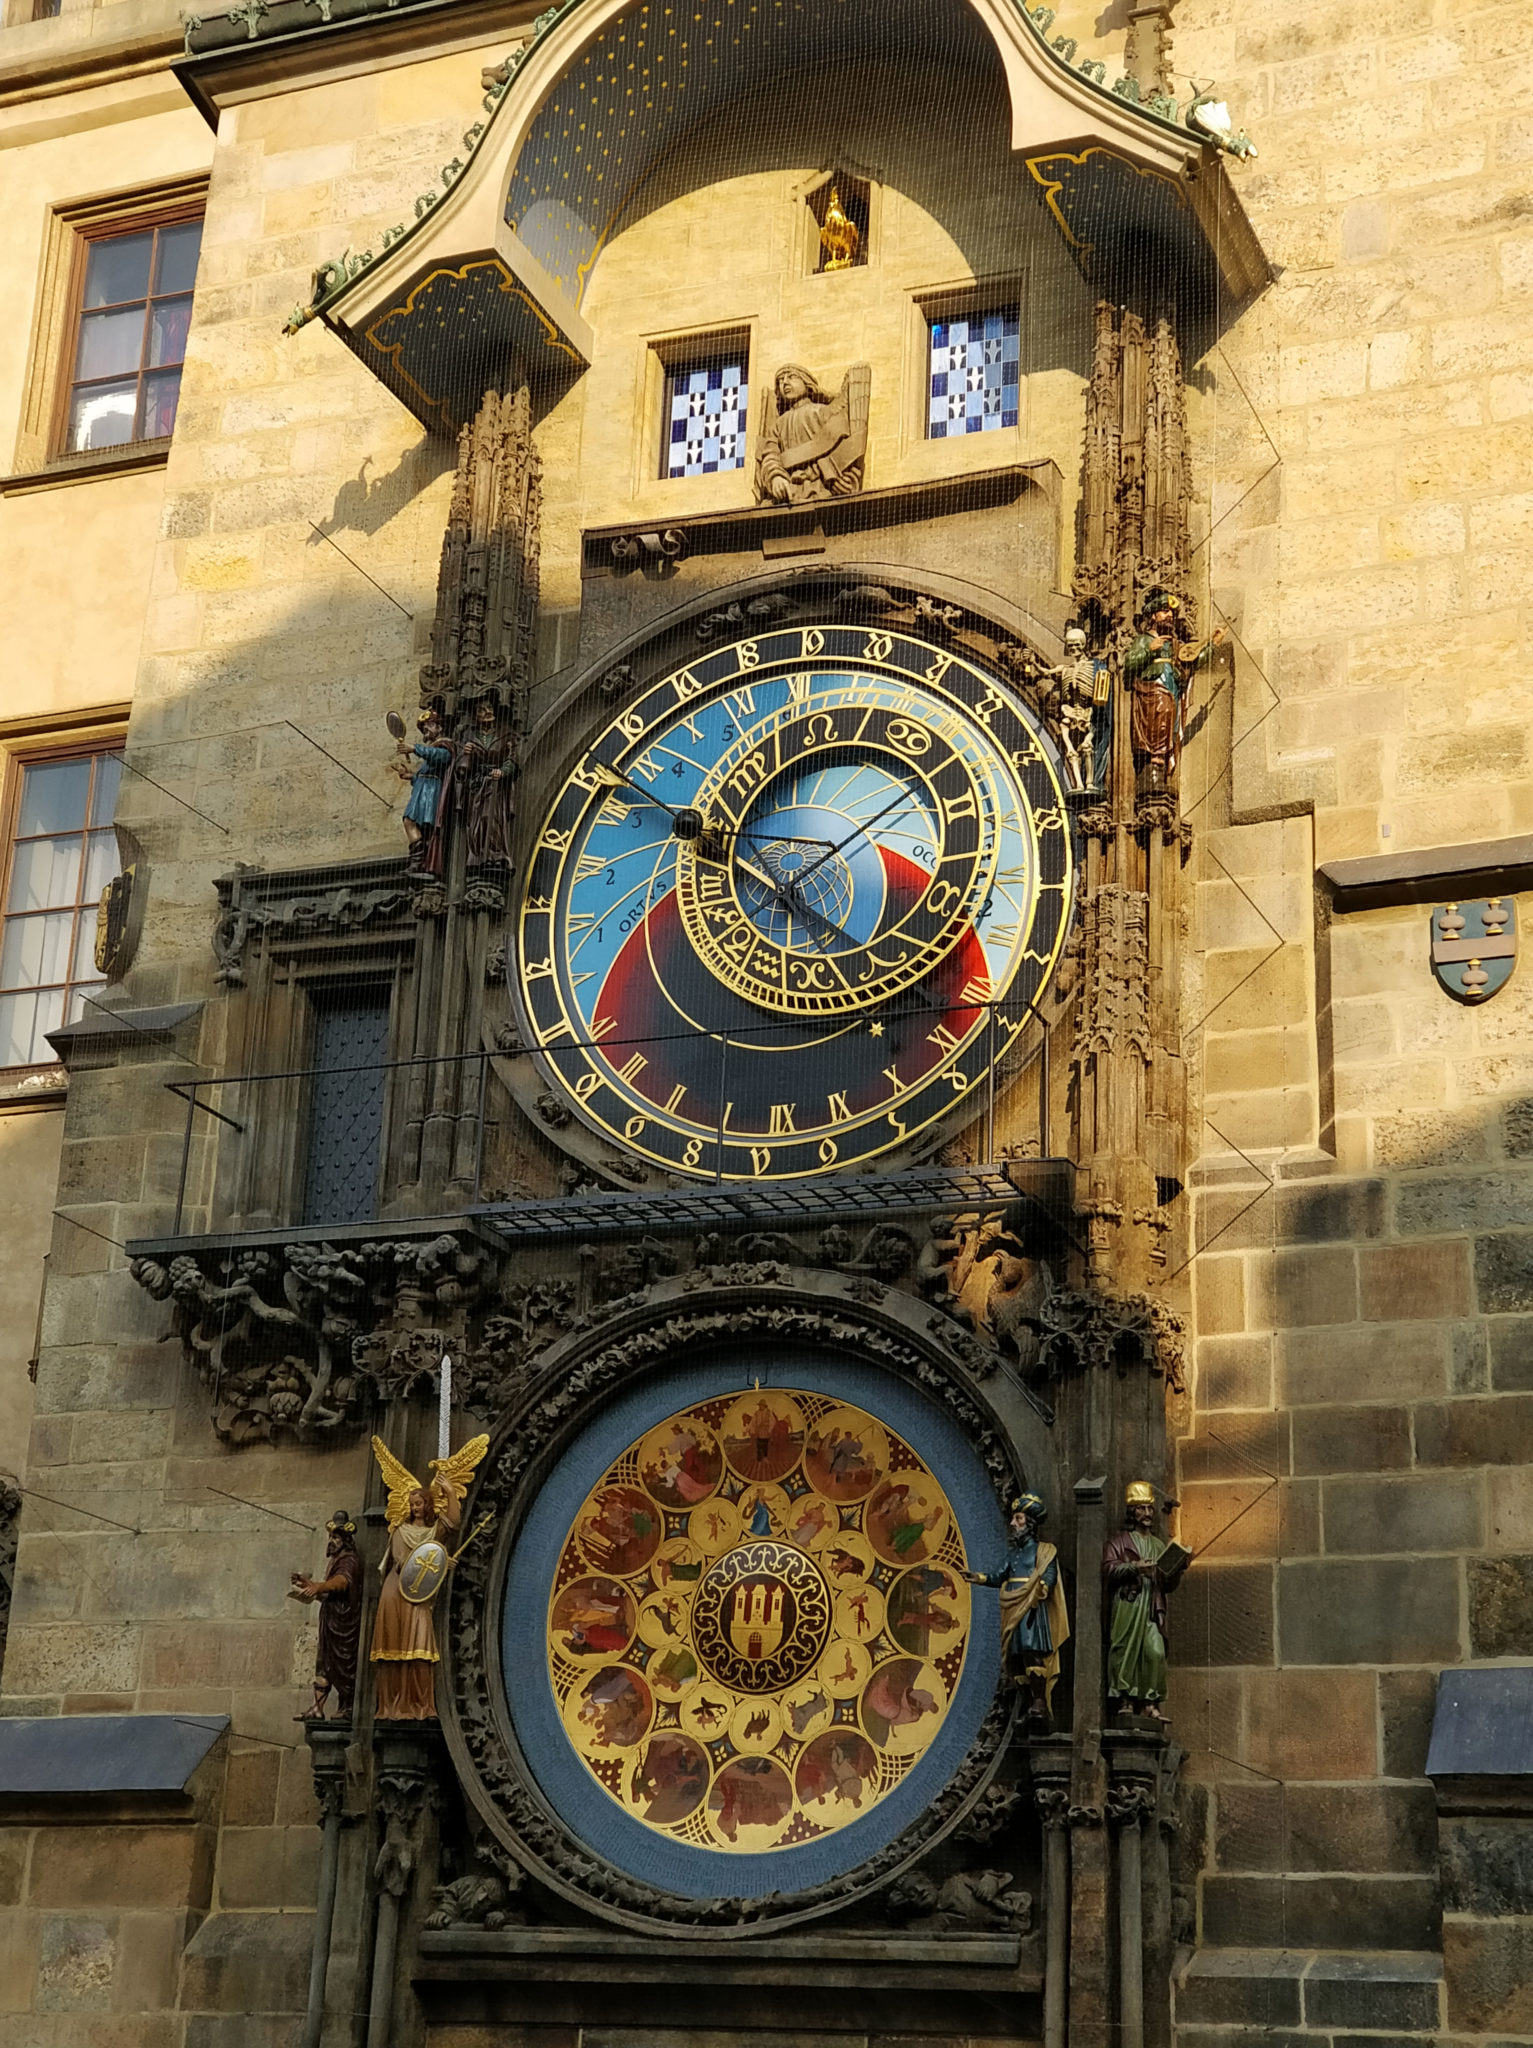 The whole clock after its restoration in 2018